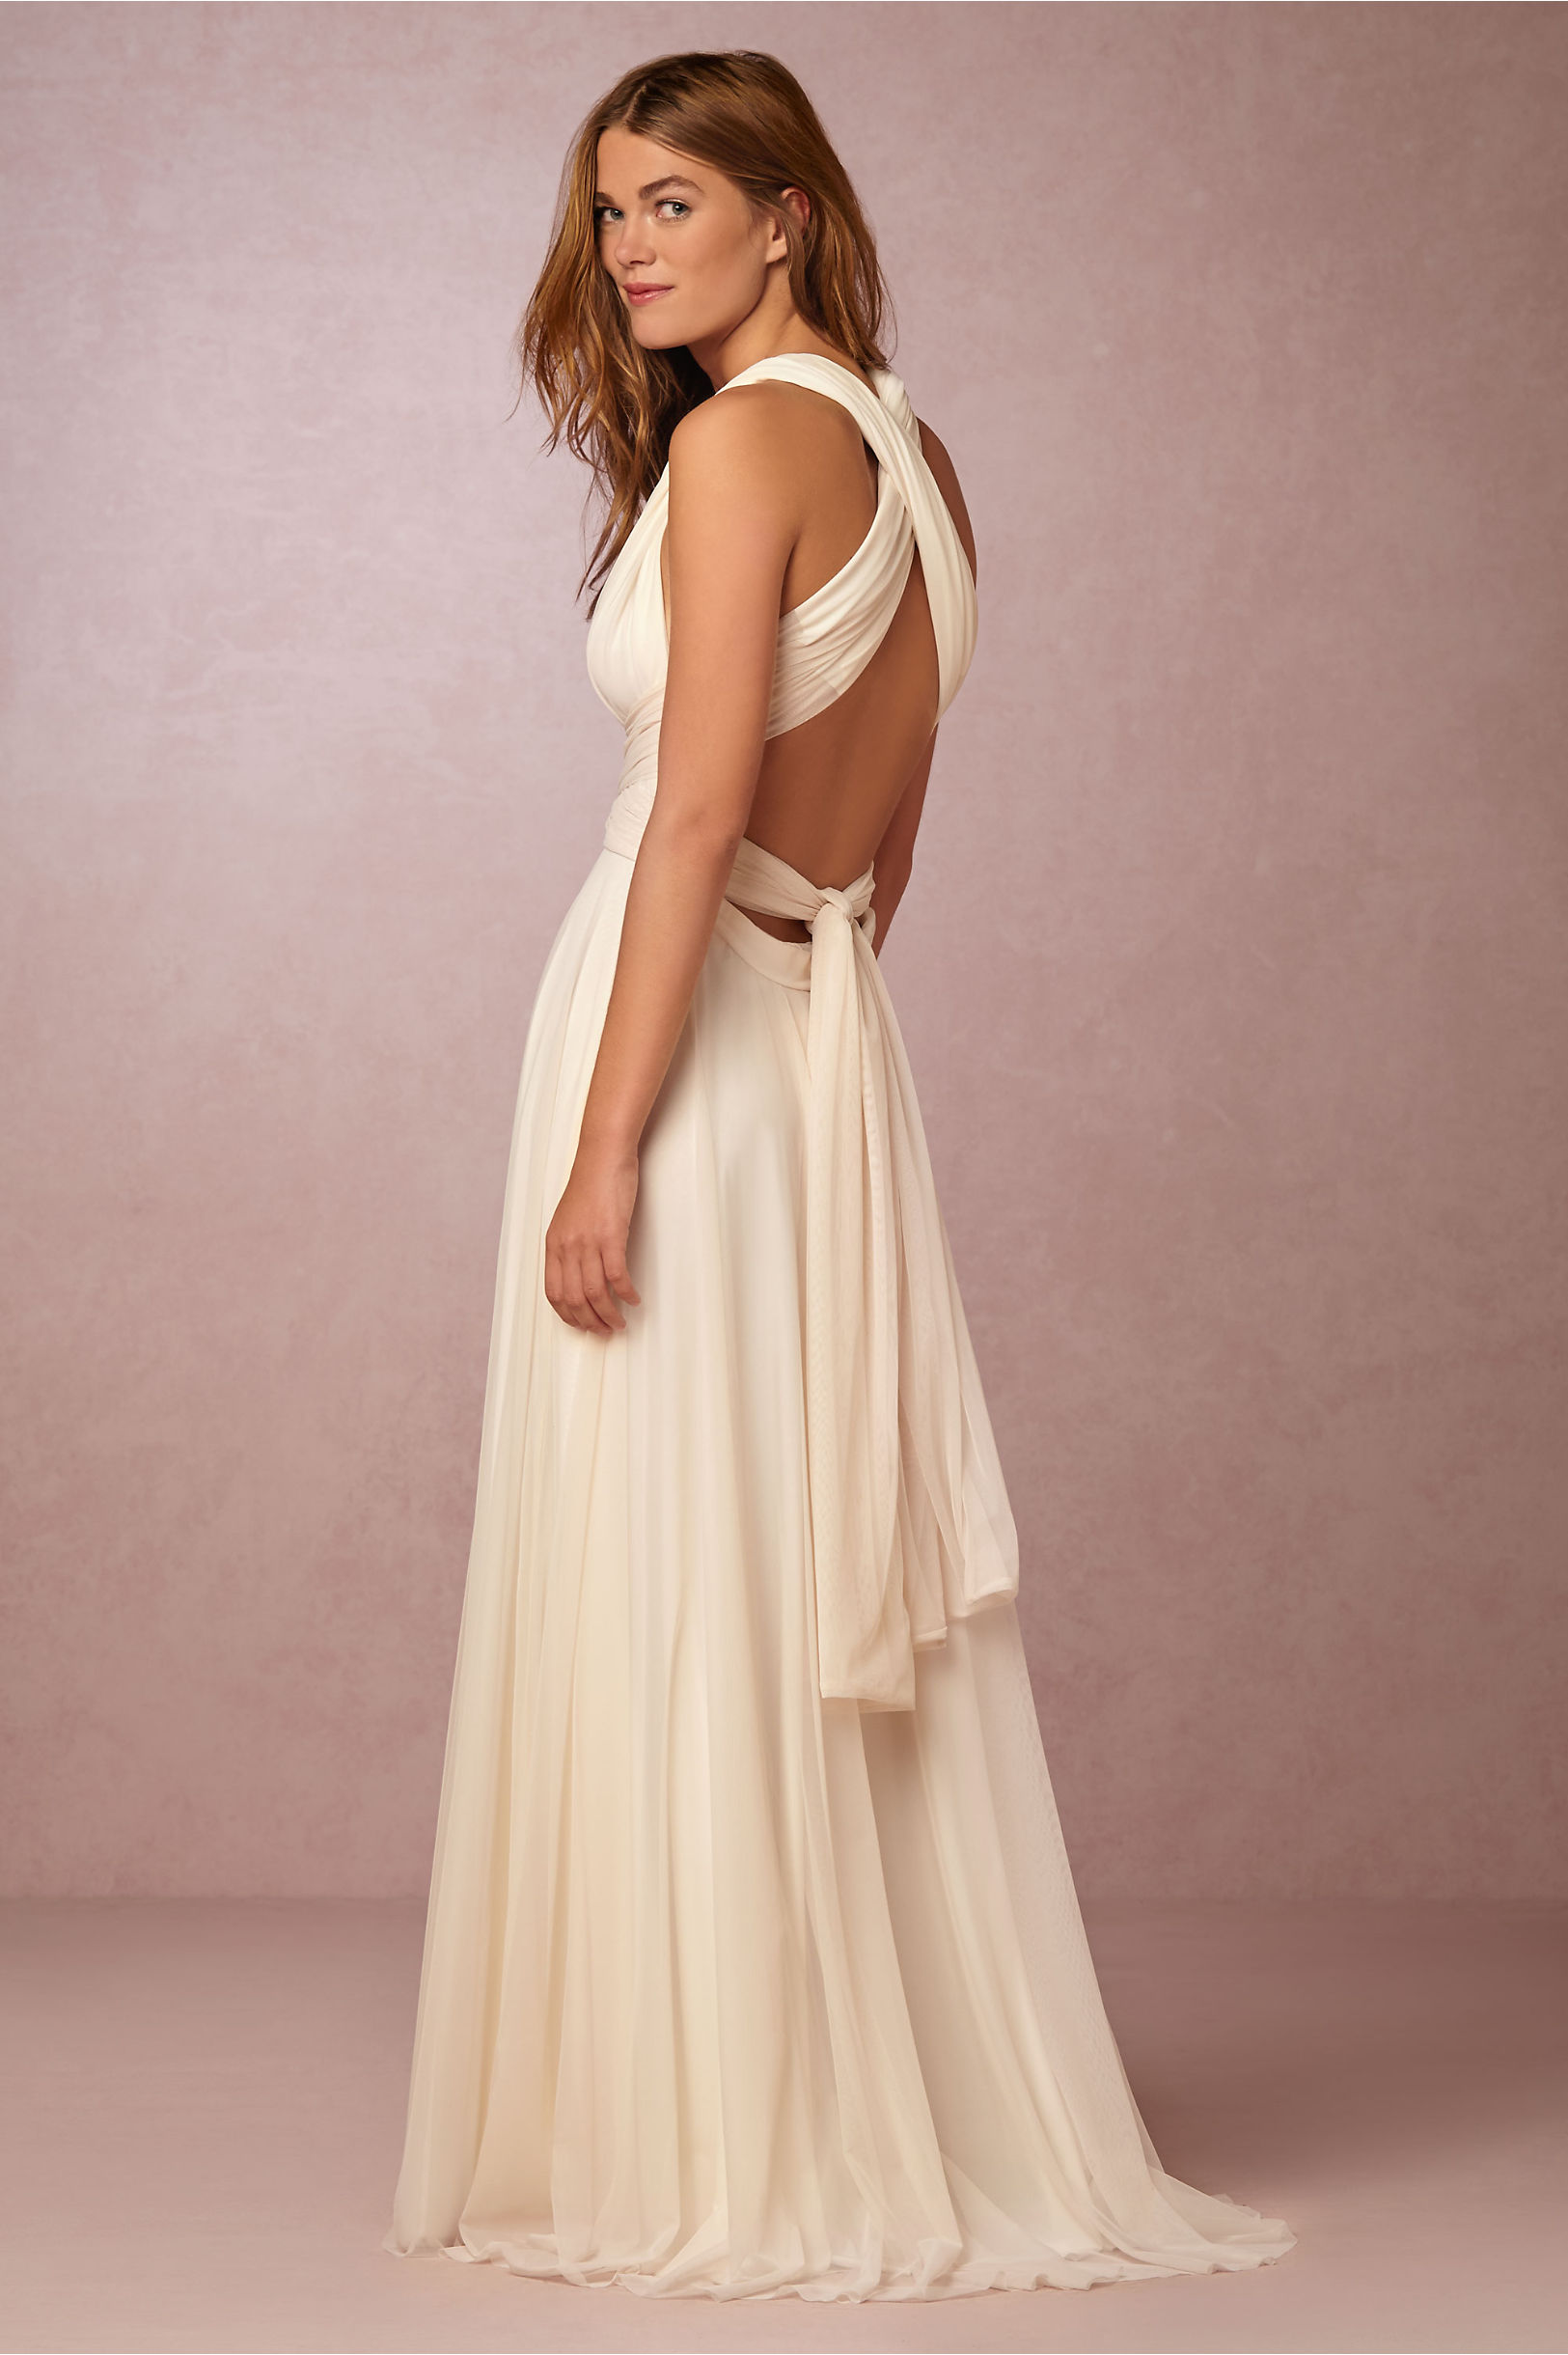 Ginger Convertible Maxi Dress in Sale Dresses | BHLDN